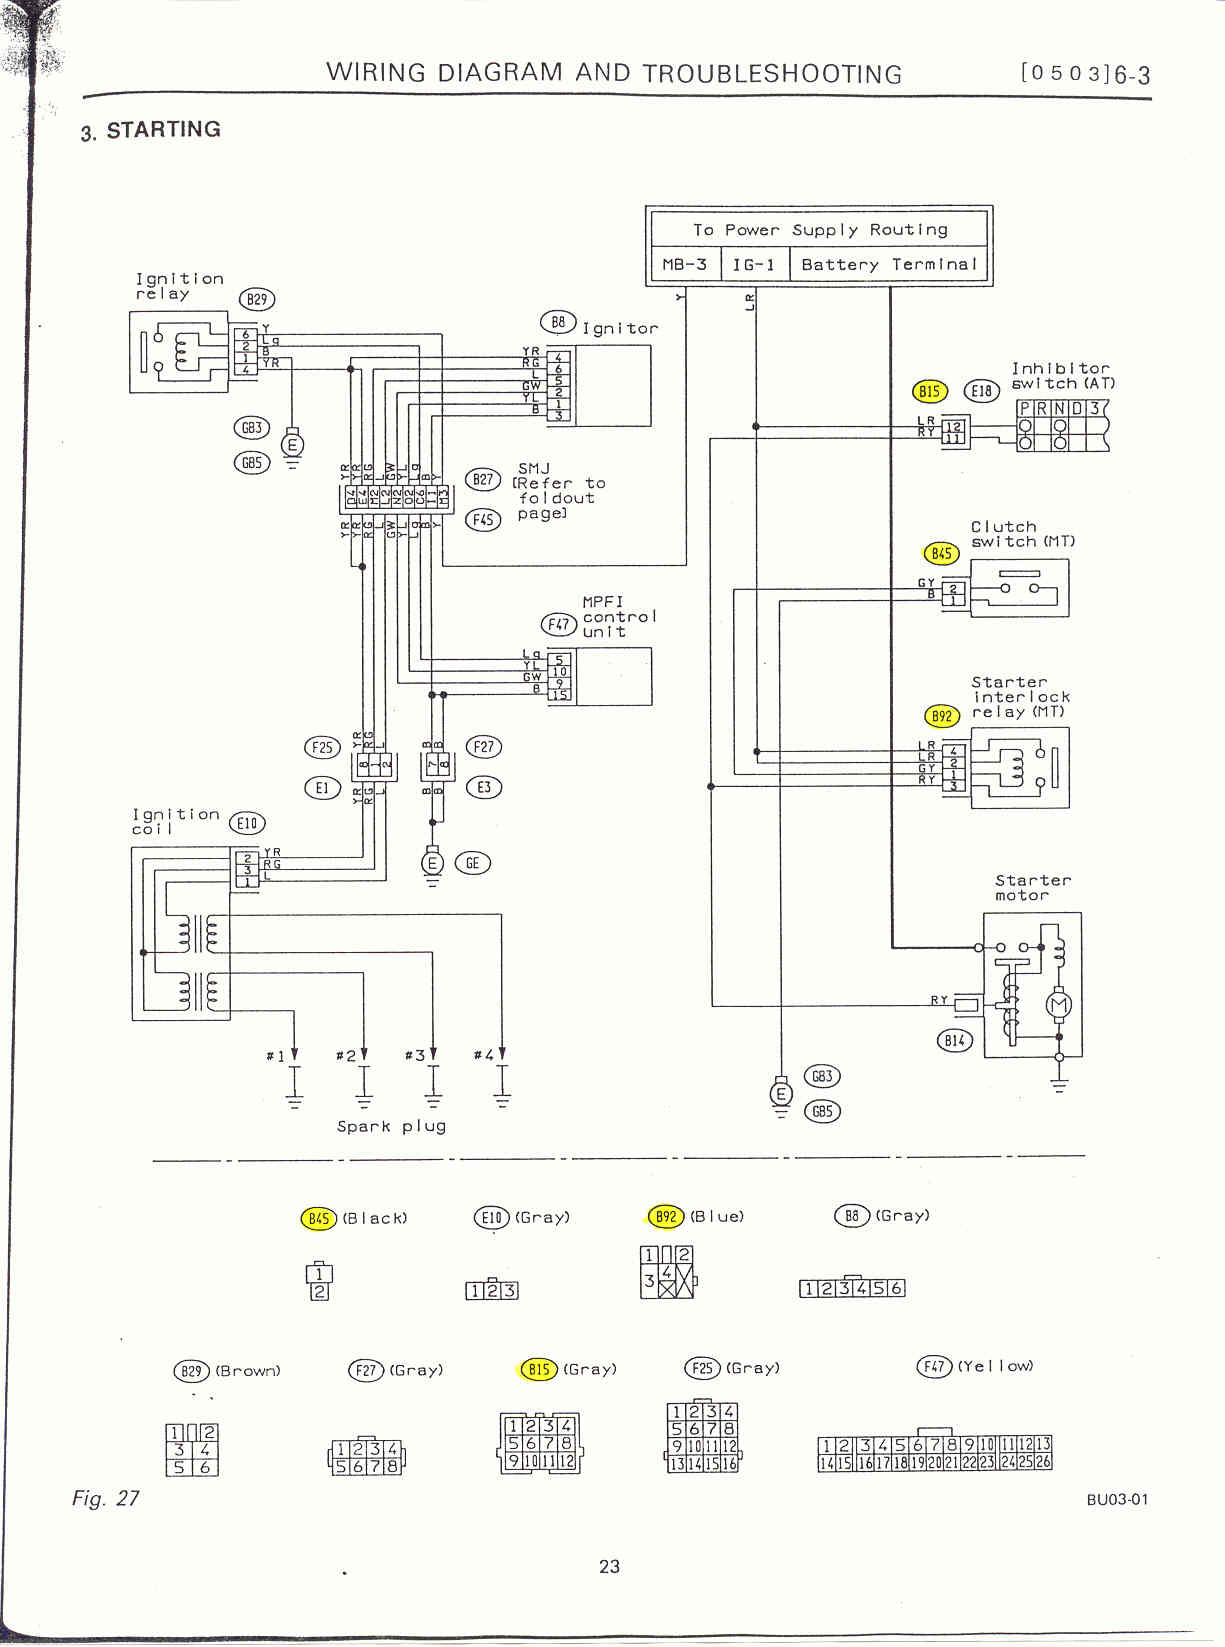 2005 subaru legacy radio wiring diagram for car stereo 93 get free image about